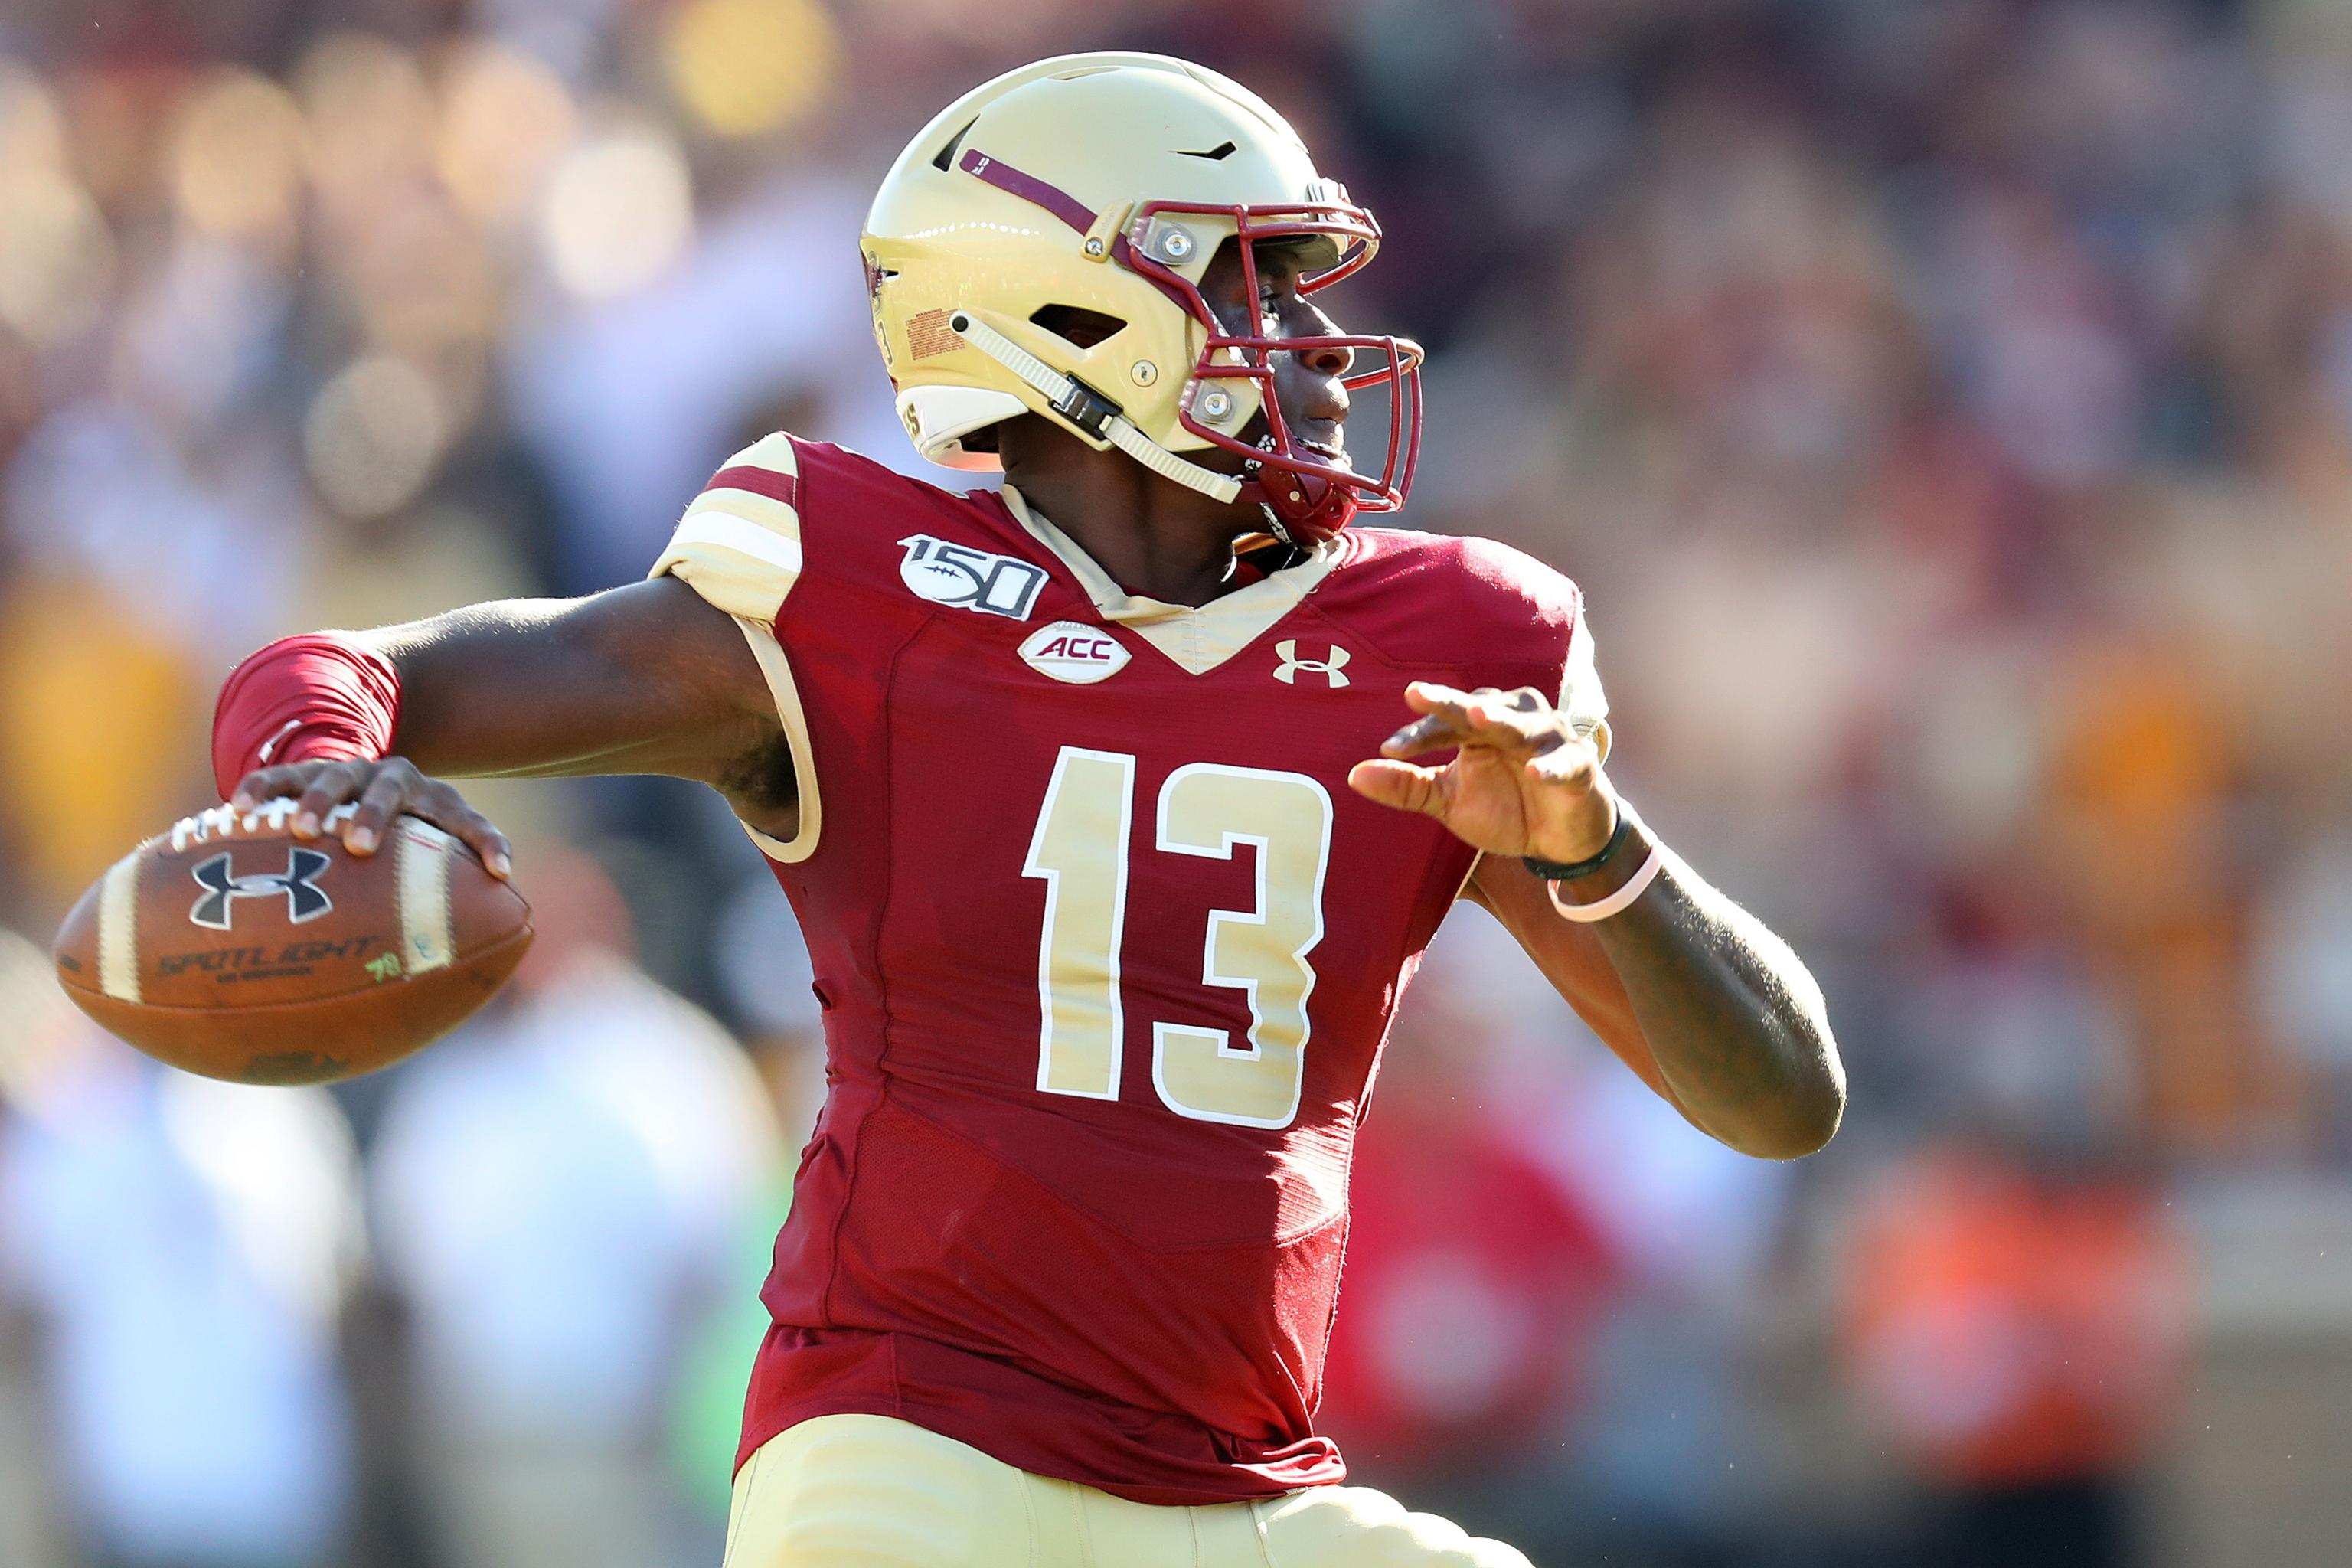 Report Qb Anthony Brown Transfers To Oregon From Bc Eligible To Play In 2020 Bleacher Report Latest News Videos And Highlights